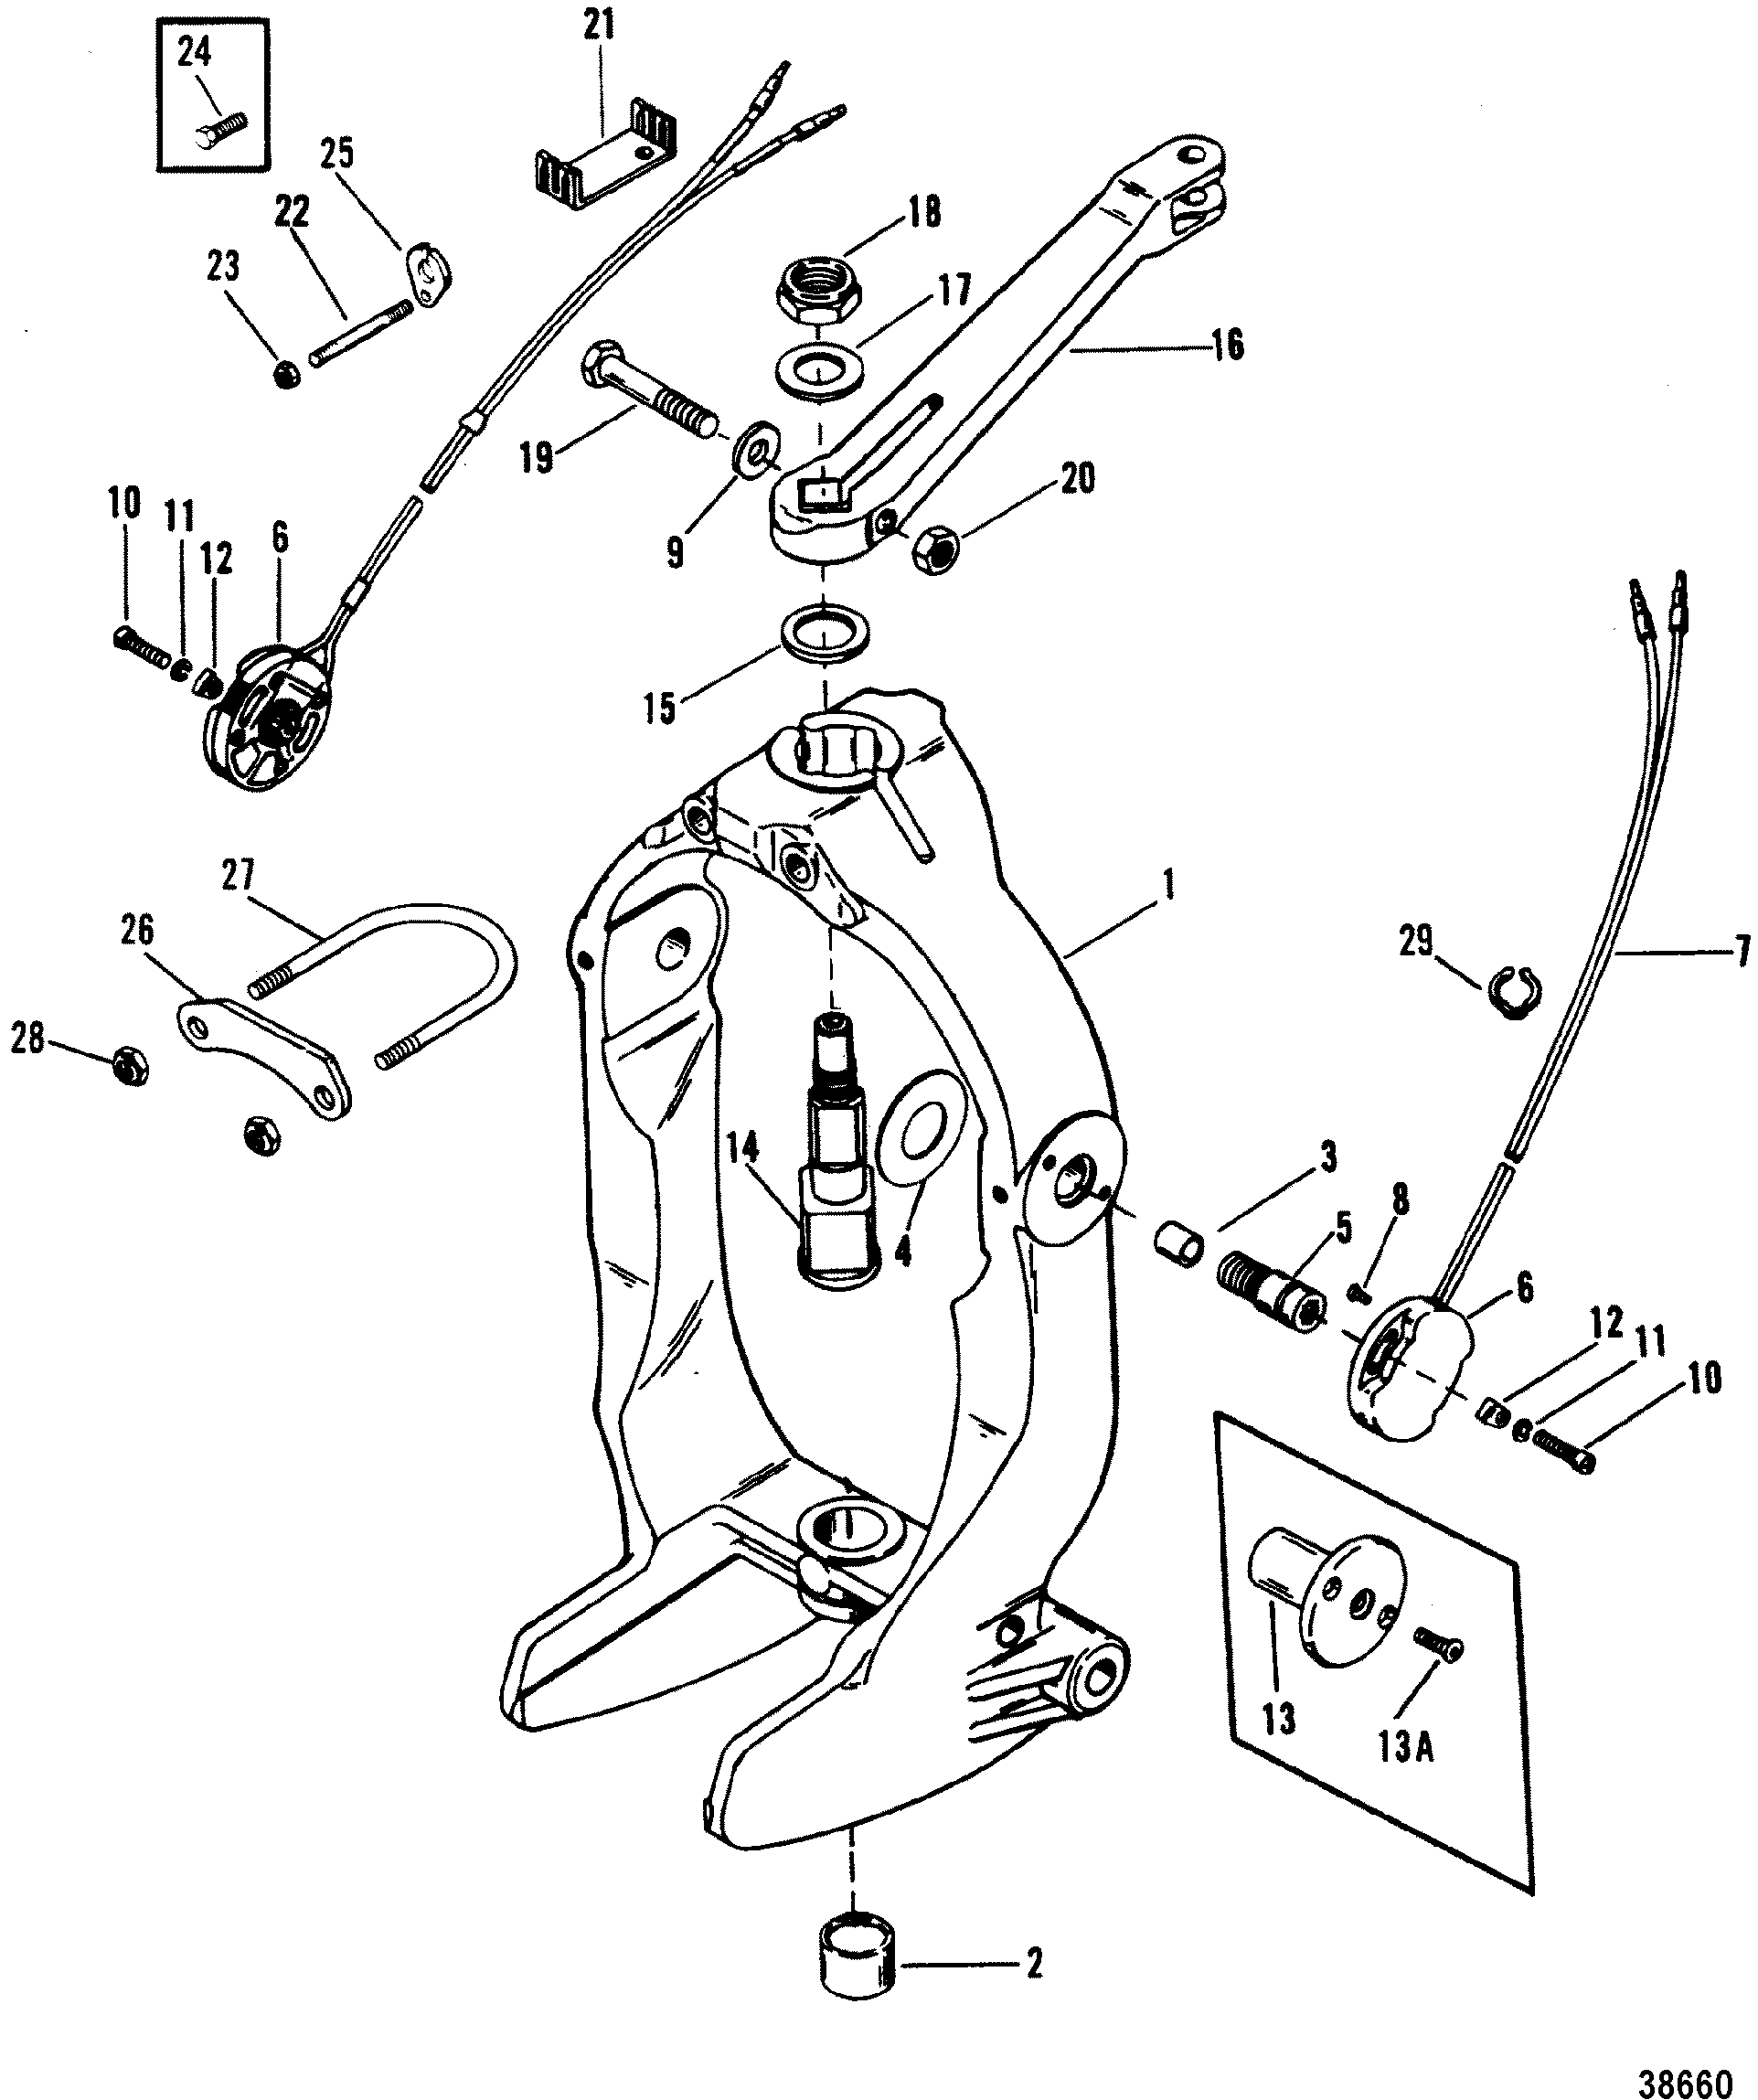 Bp AP AssemblyDetail moreover Johnson Evinrude Parts also Outboard Motor Lower Unit Diagram besides Throttle Linkage Electric Remote Control together with Show product. on mercury outboard parts diagram